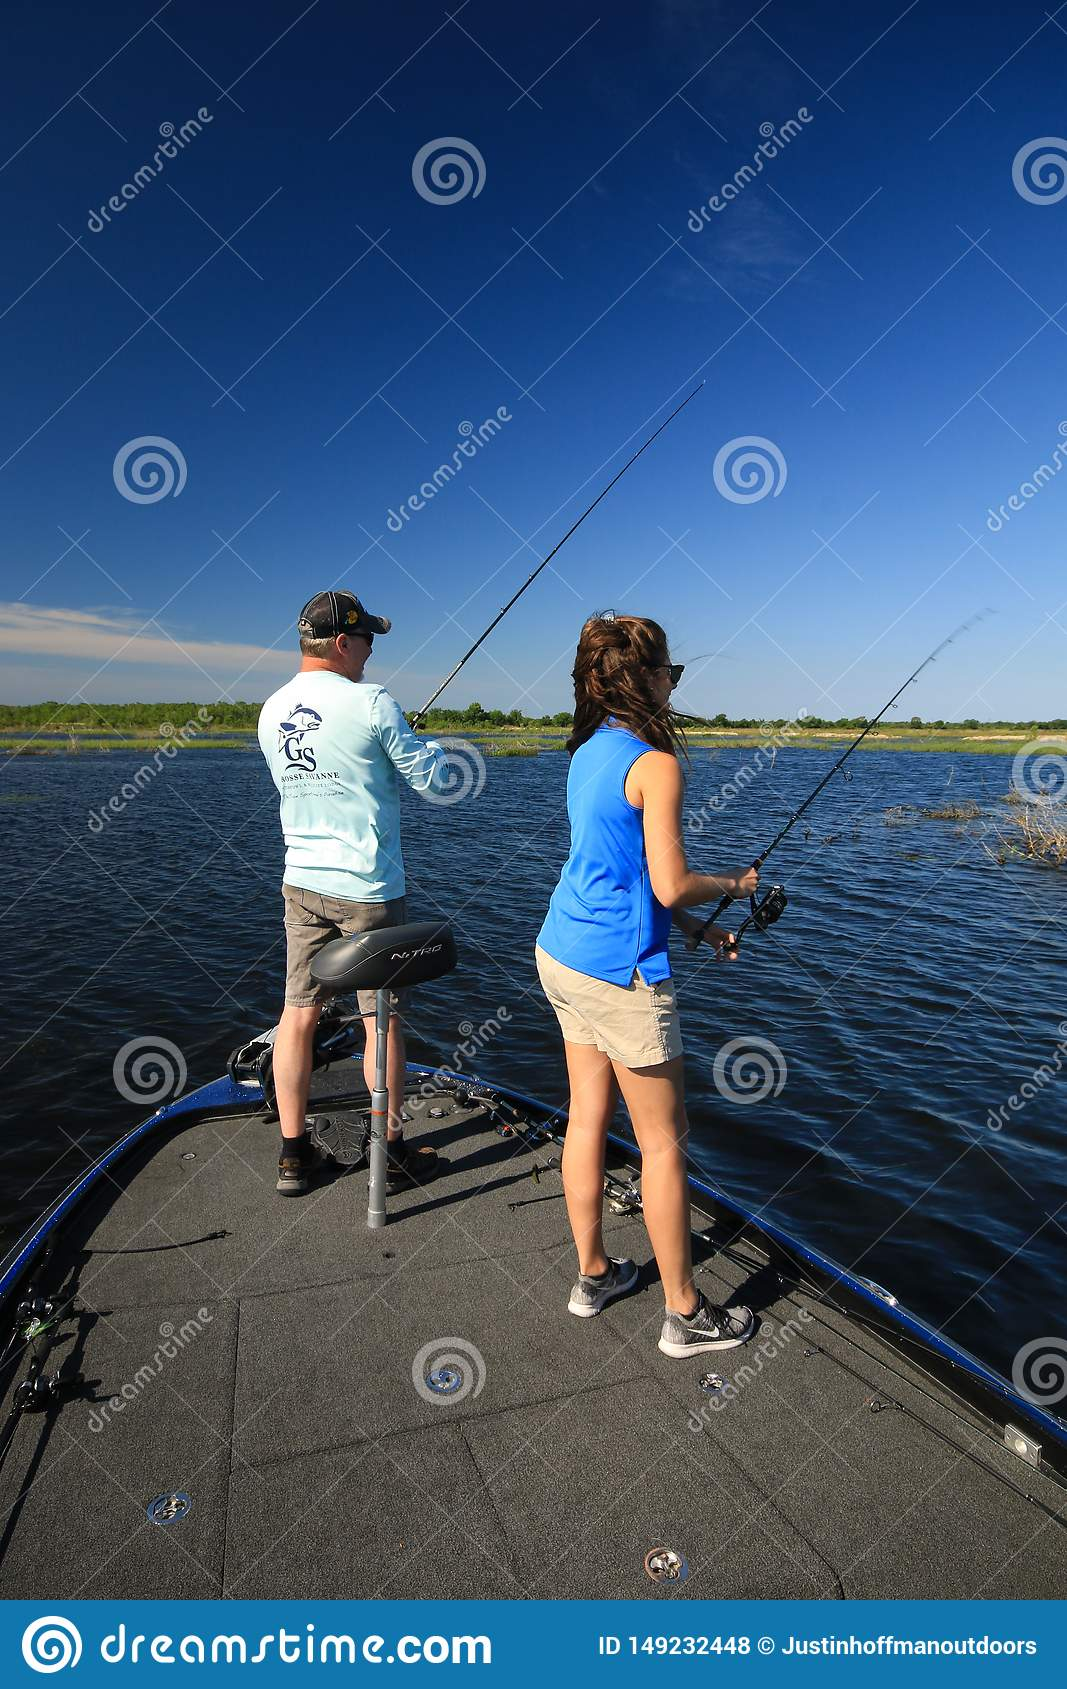 Man and Woman Large Mouth Bass Fishing in Boat